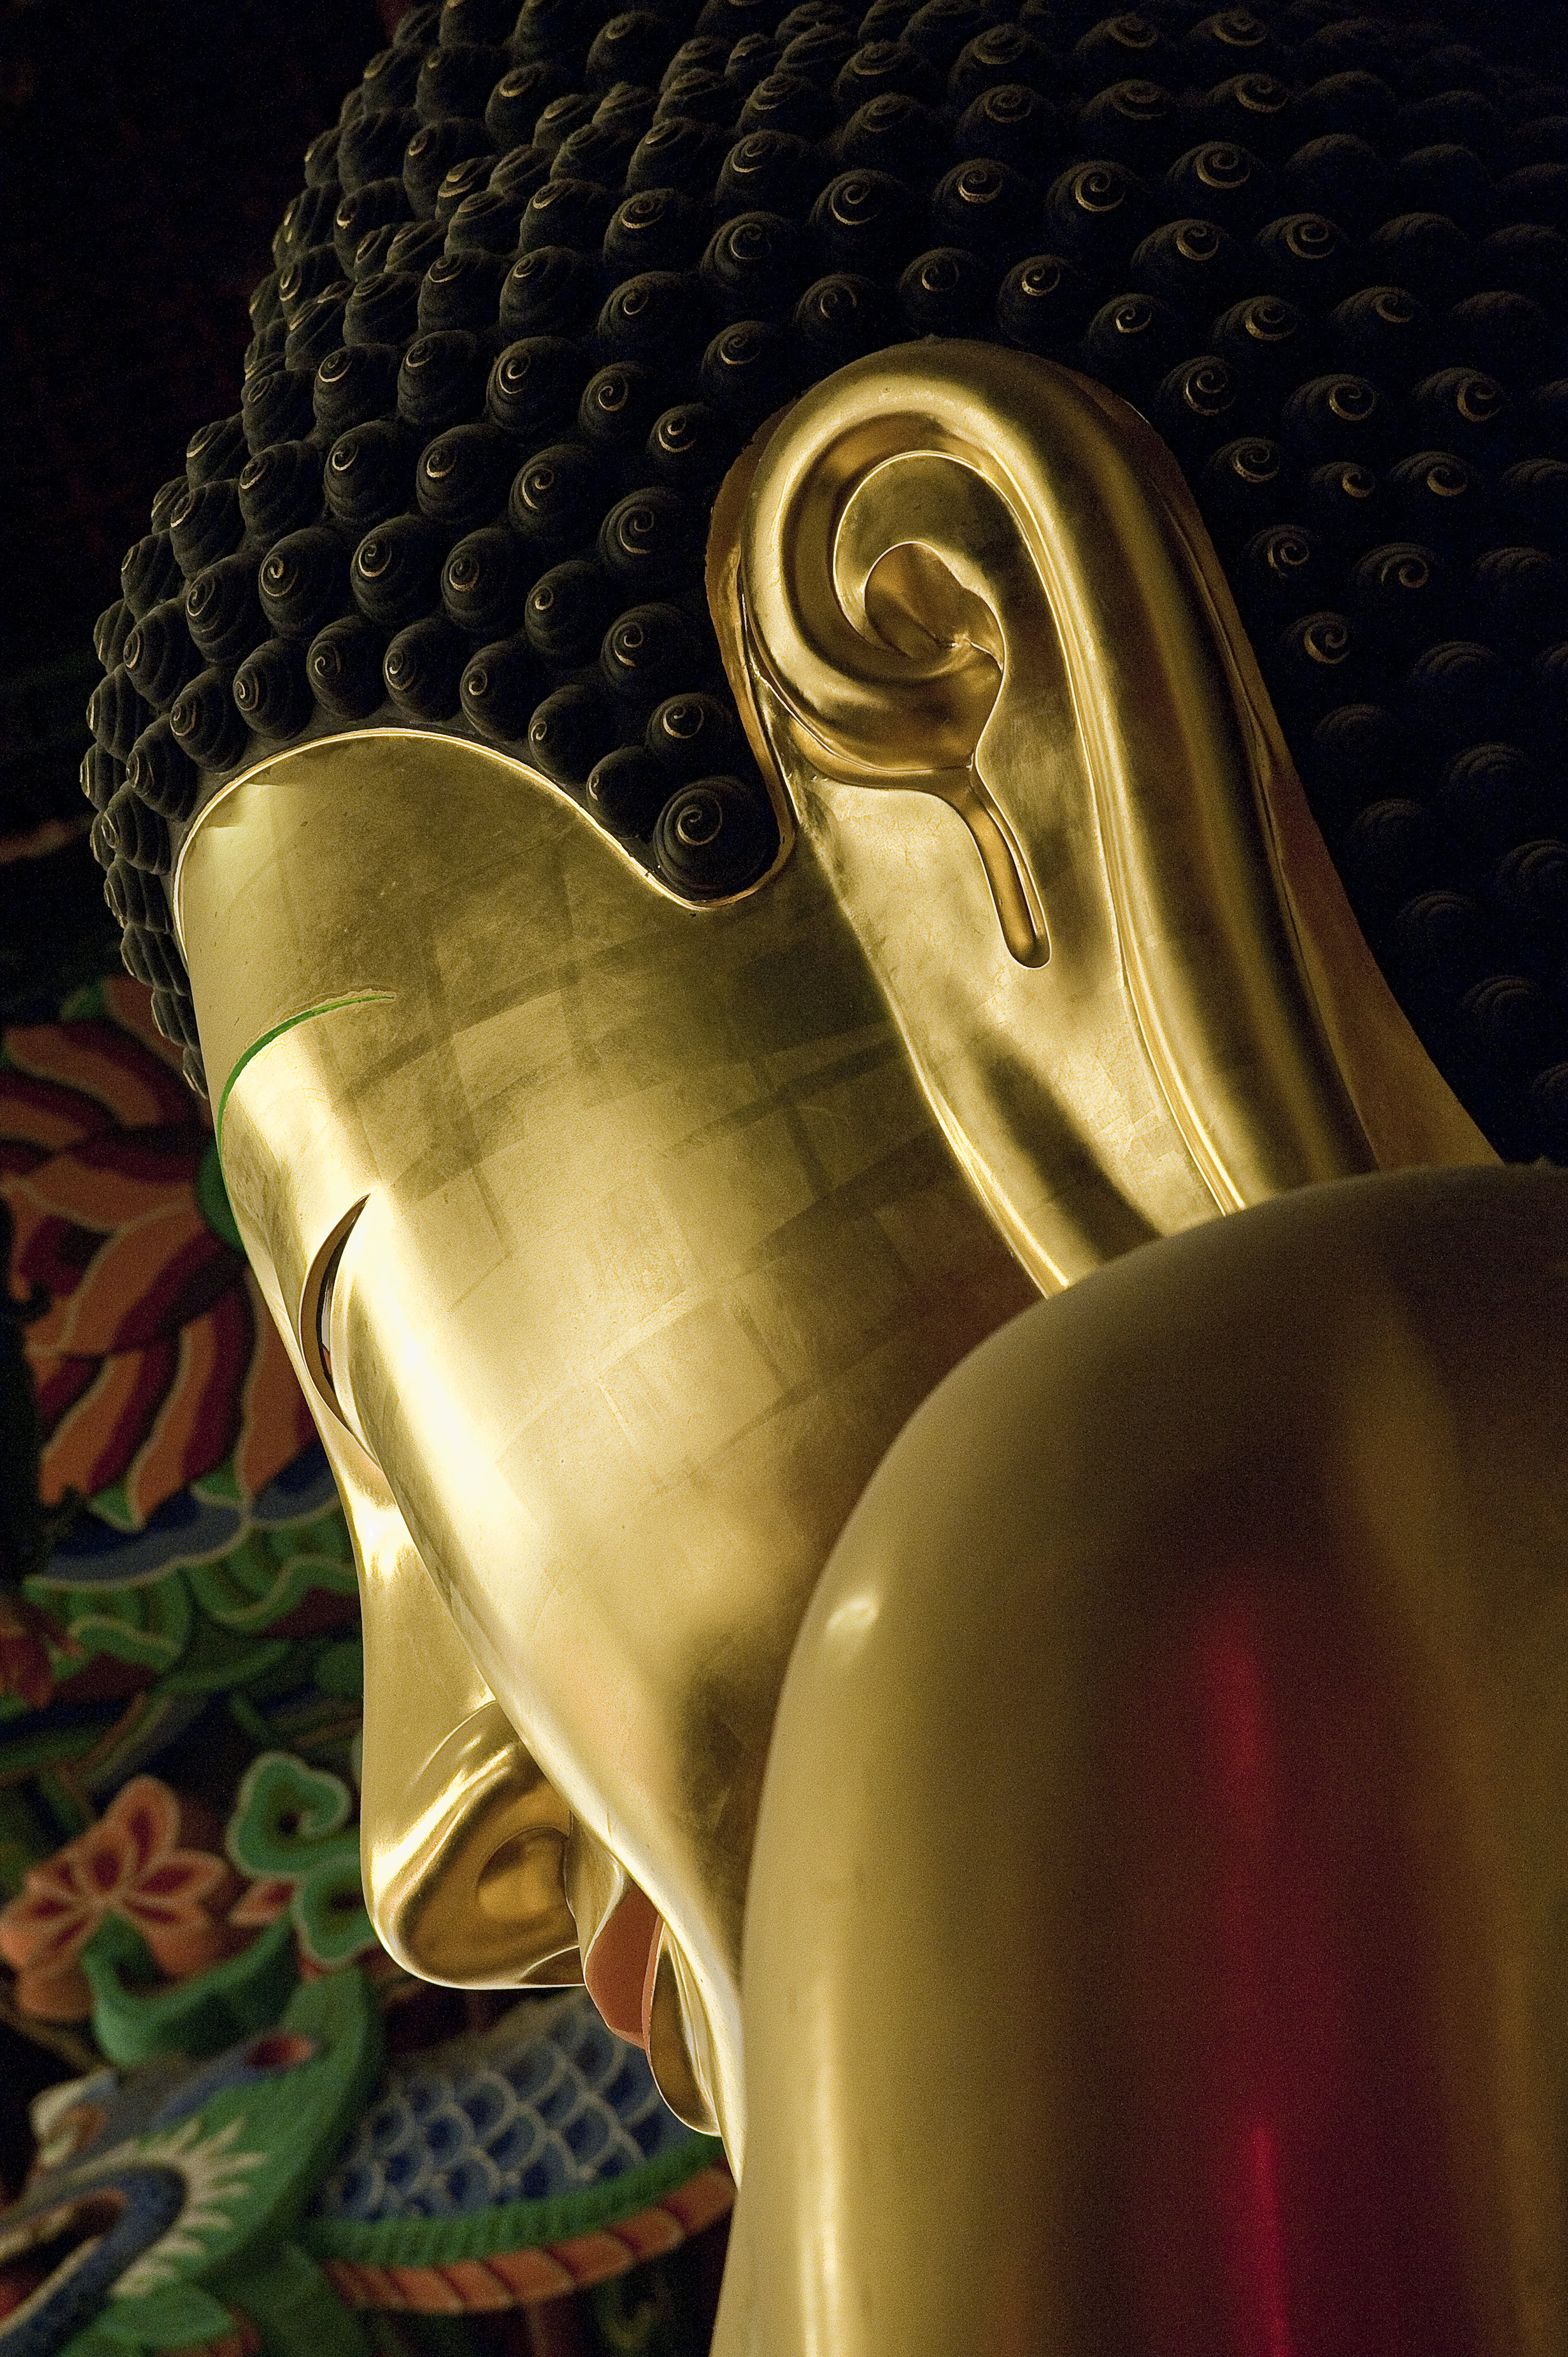 Golden Buddha Statue inside Jogyesa Temple in Seoul South Korea for National Geographic